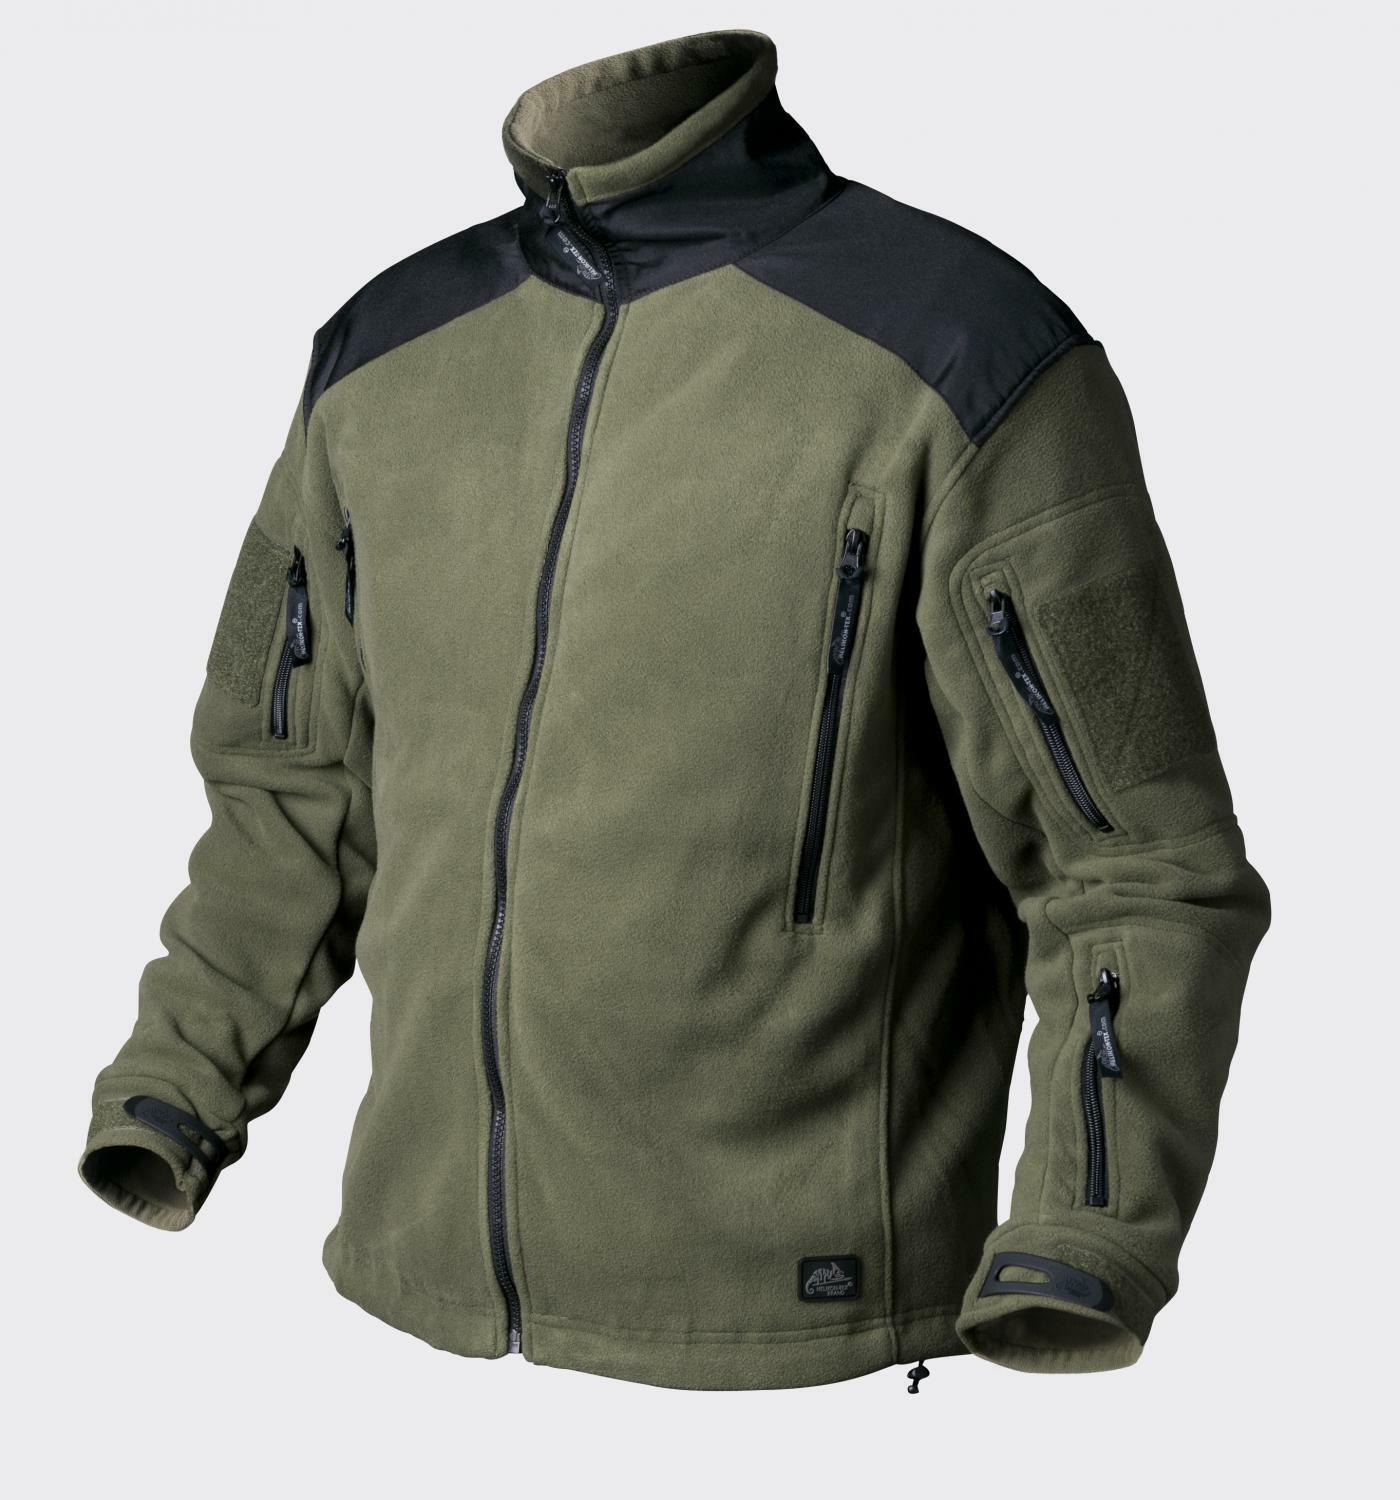 Helikon TEX TEX TEX LIBERTY HEAVY FLEECE Outdoor huntersman Jacket Giacca verde Oliva XL XLARGE d568b3